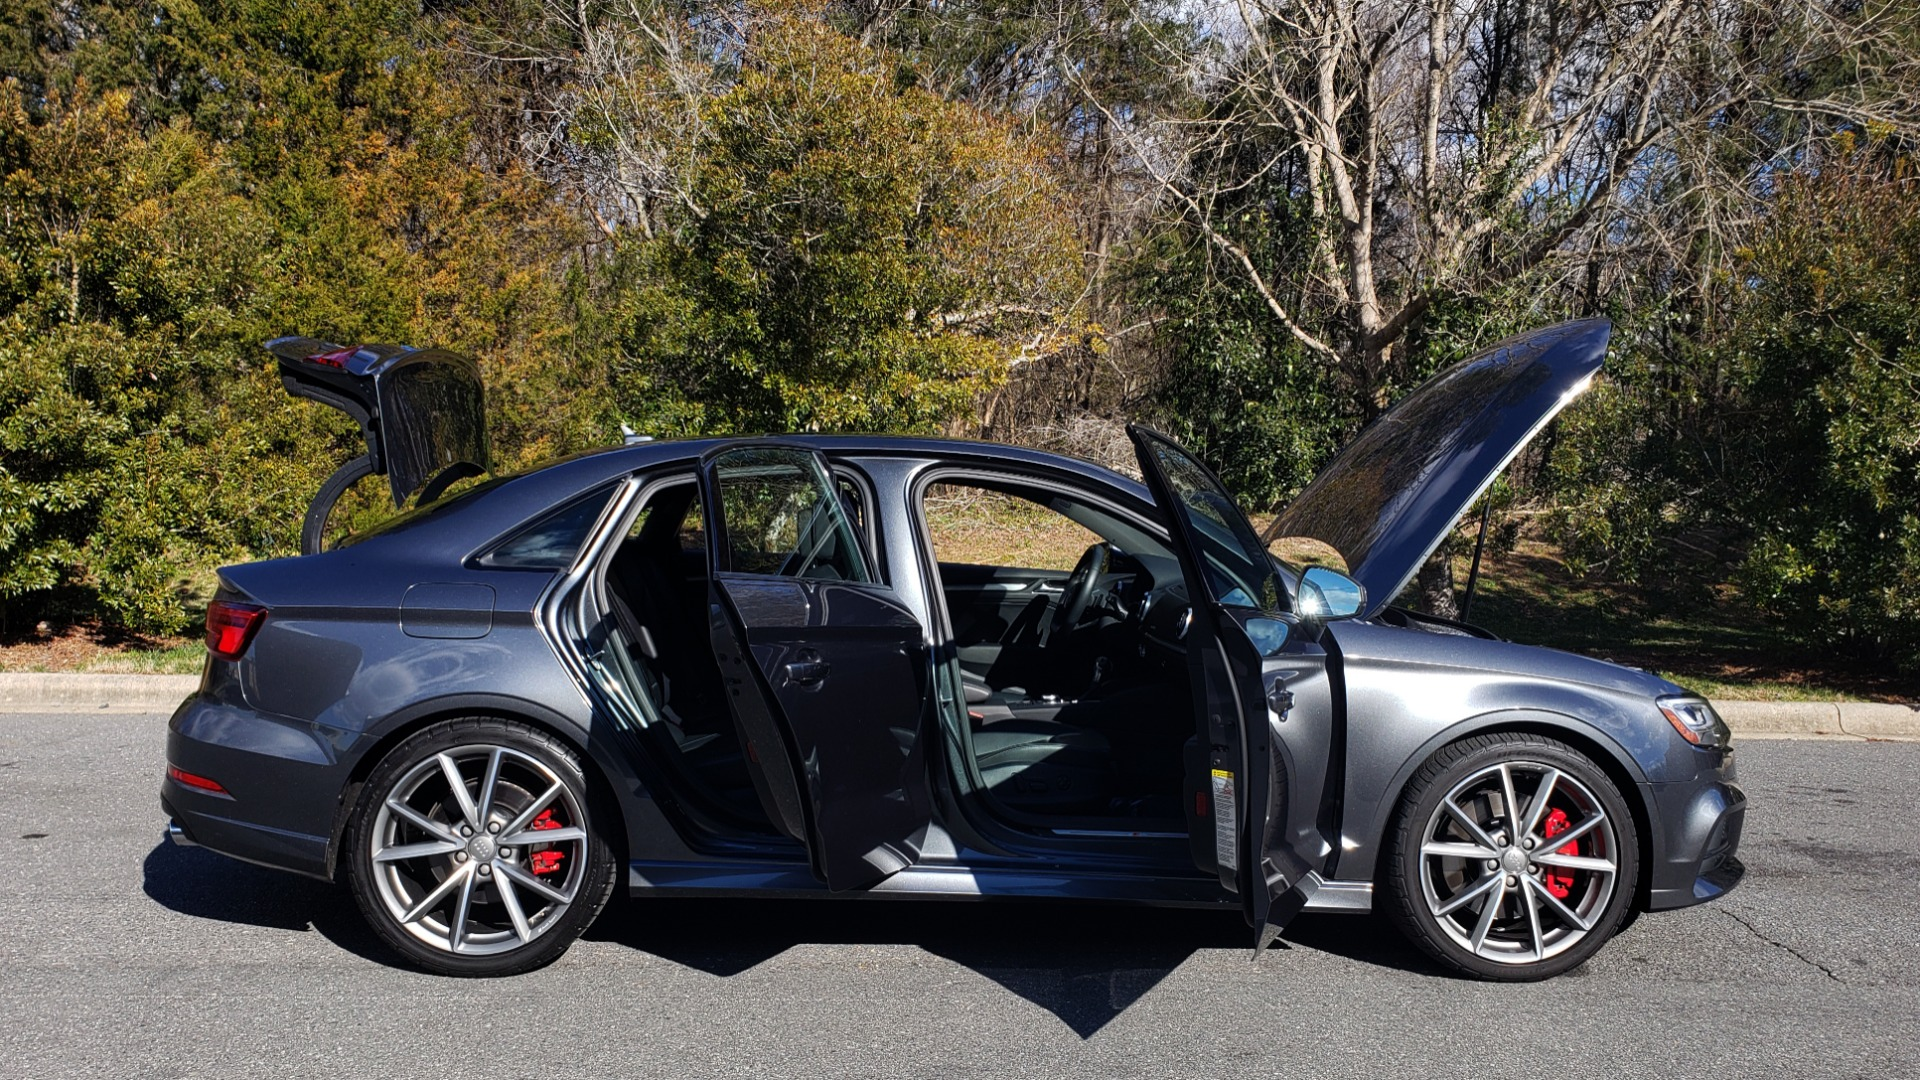 Used 2018 Audi S3 PREMIUM PLUS / TECH / NAV / BLACK OPTIC / S-SPORT / REARVIEW for sale $32,995 at Formula Imports in Charlotte NC 28227 9